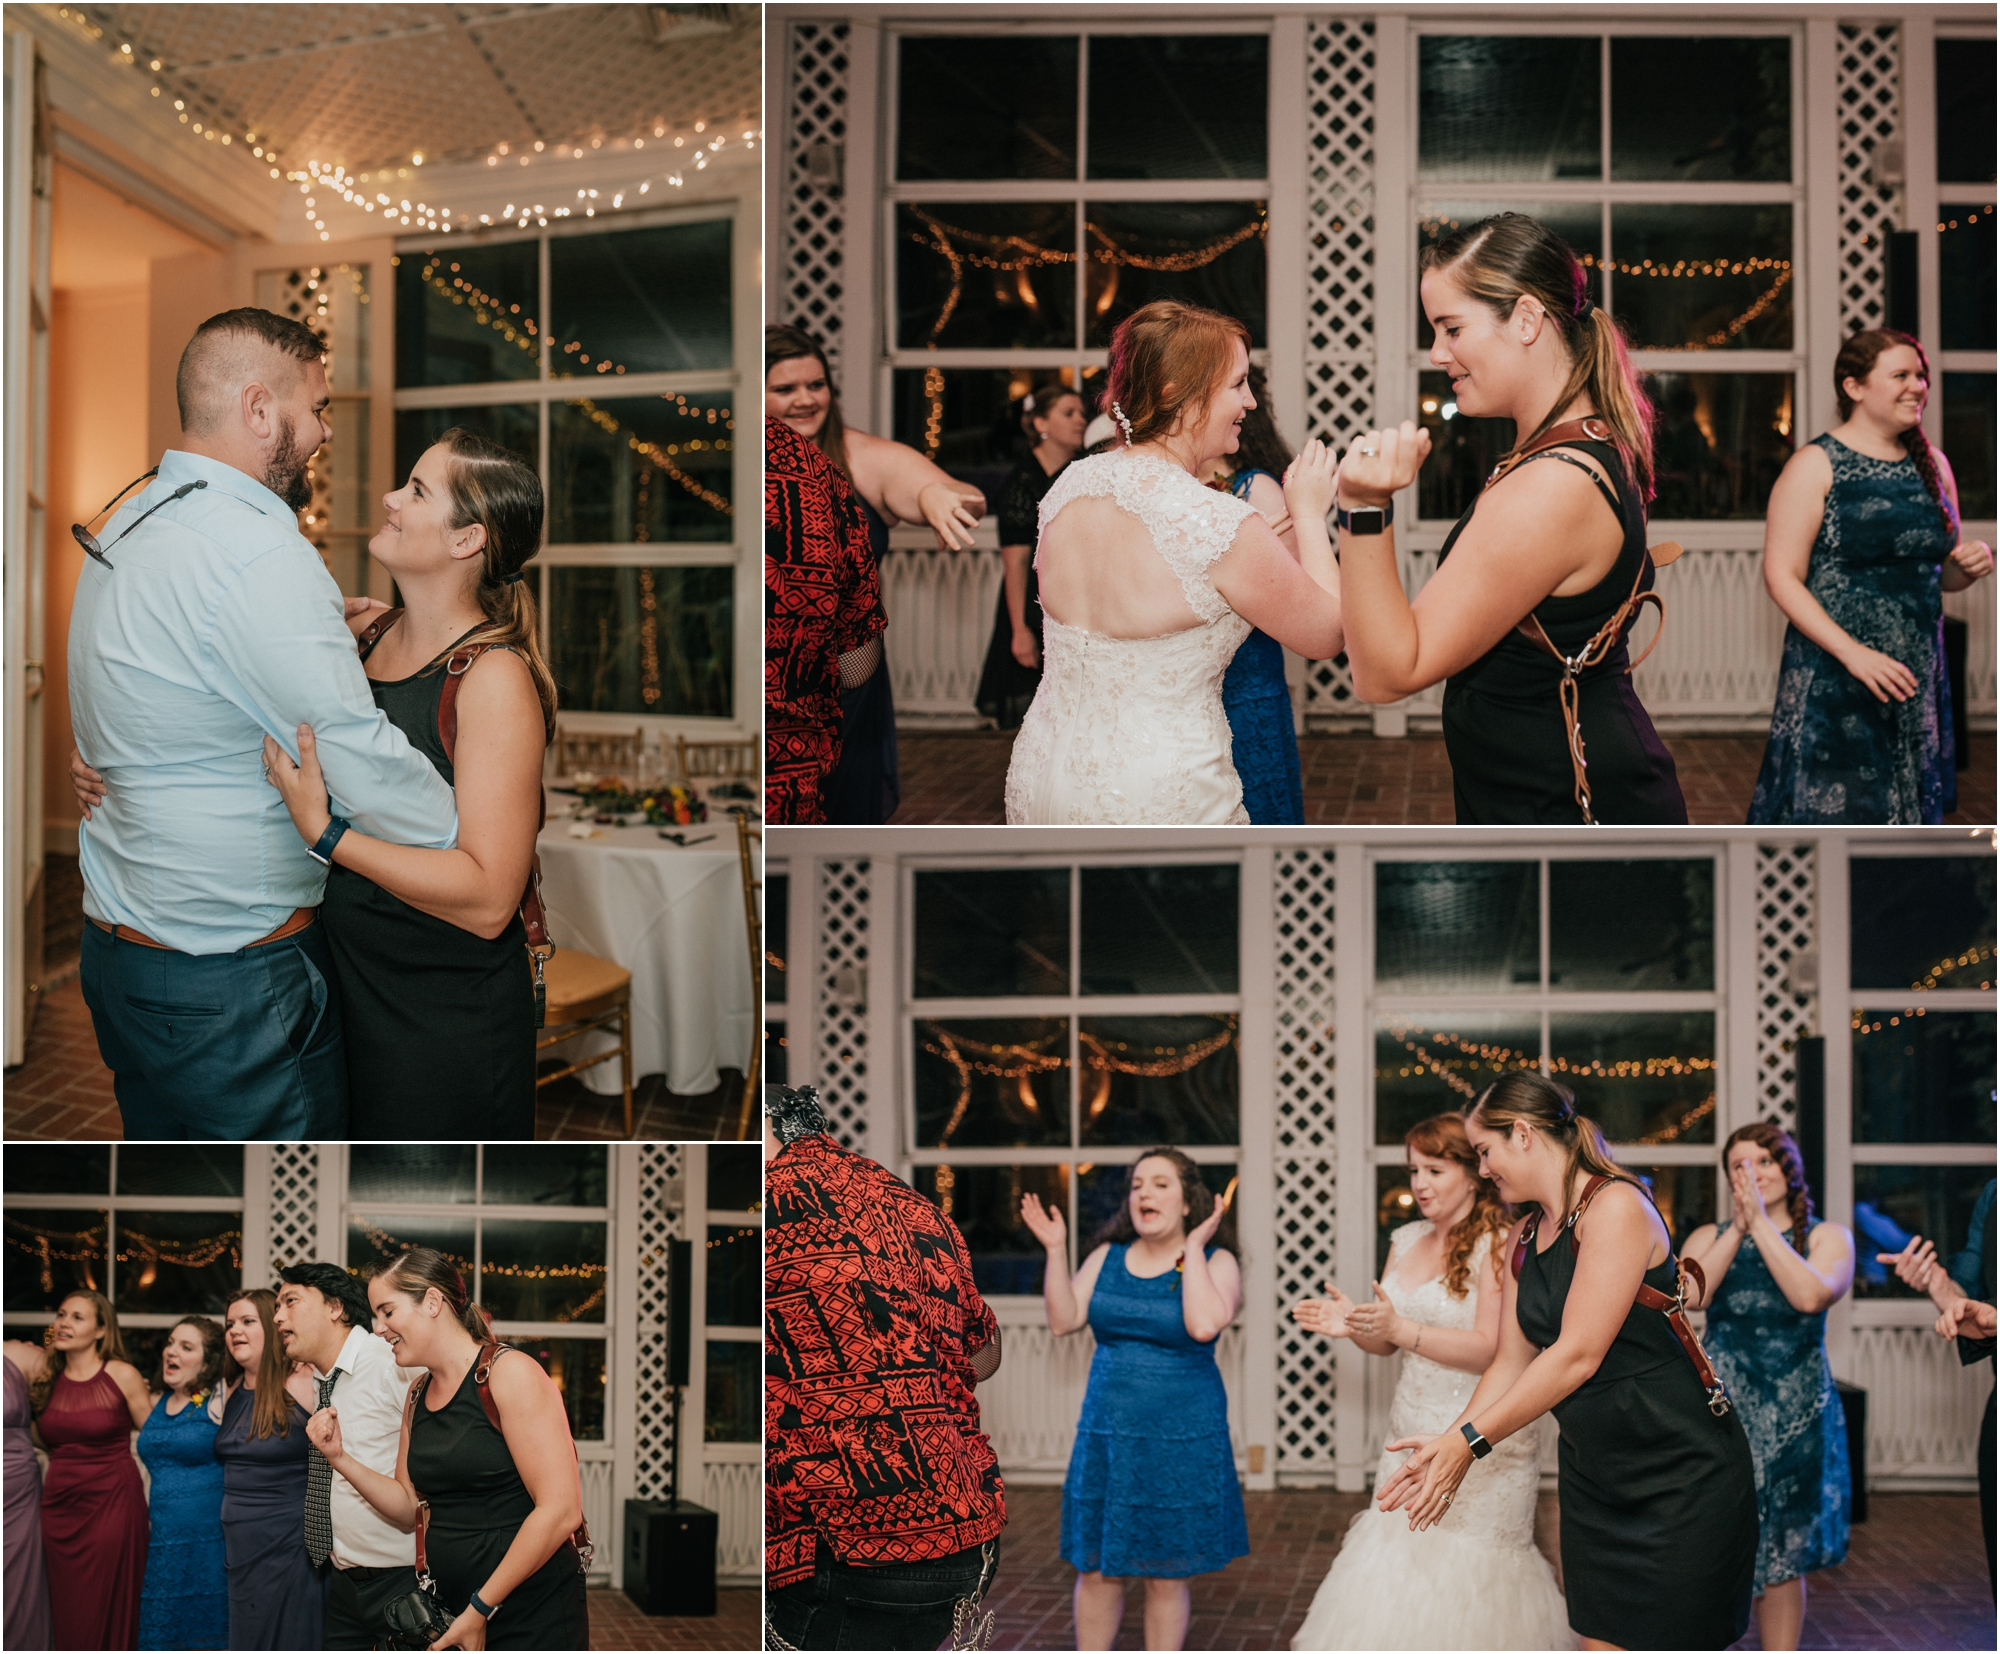 Since Andrew and I were also guests at Bethany's wedding, we danced our butts off like guests.